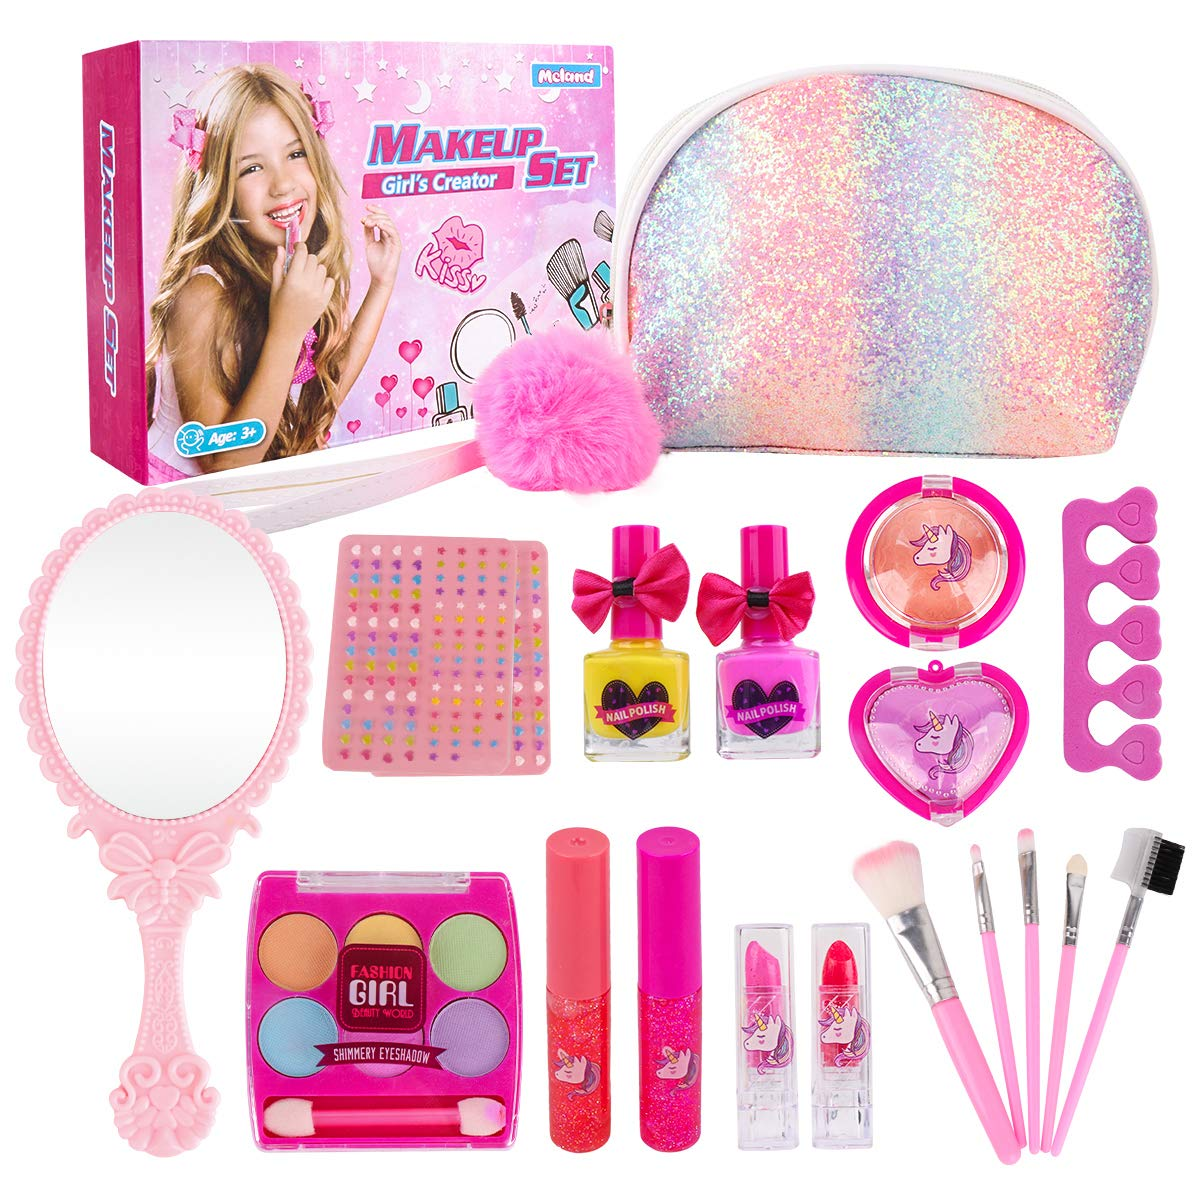 Girl Makeup Kit - Kids Real Washable Play Makeup Toy for Toddler Gifts Age 2 3 4 5 6 7, Child Pretend Princess Cosmetics Set with Glitter Purse, Nail Polish, Make up Brush, Eyeshadow, Lip Gloss, Blush by Meland